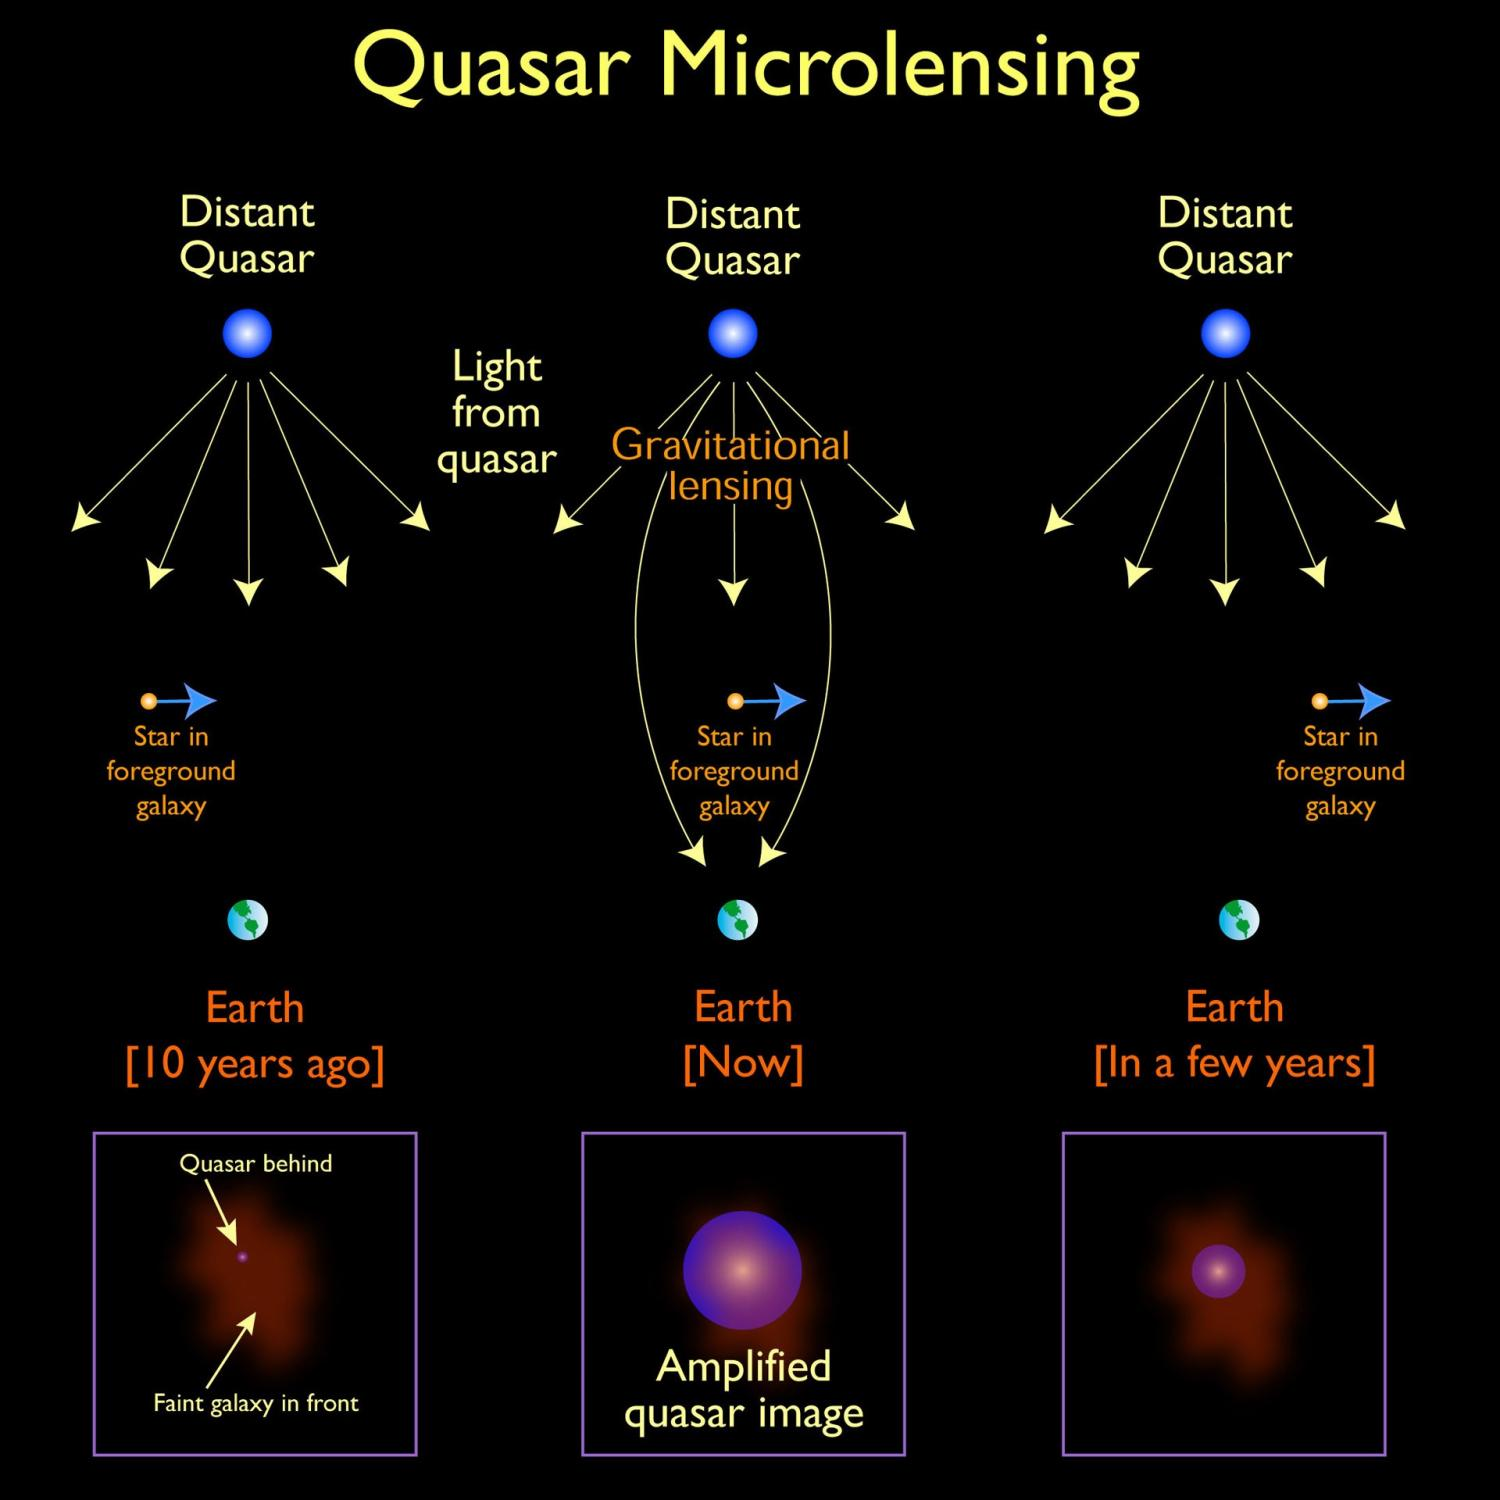 The Microlensing Object In Foreground Galaxy Could Be A Star As Depicted Primordial Black Hole Or Any Other Compact